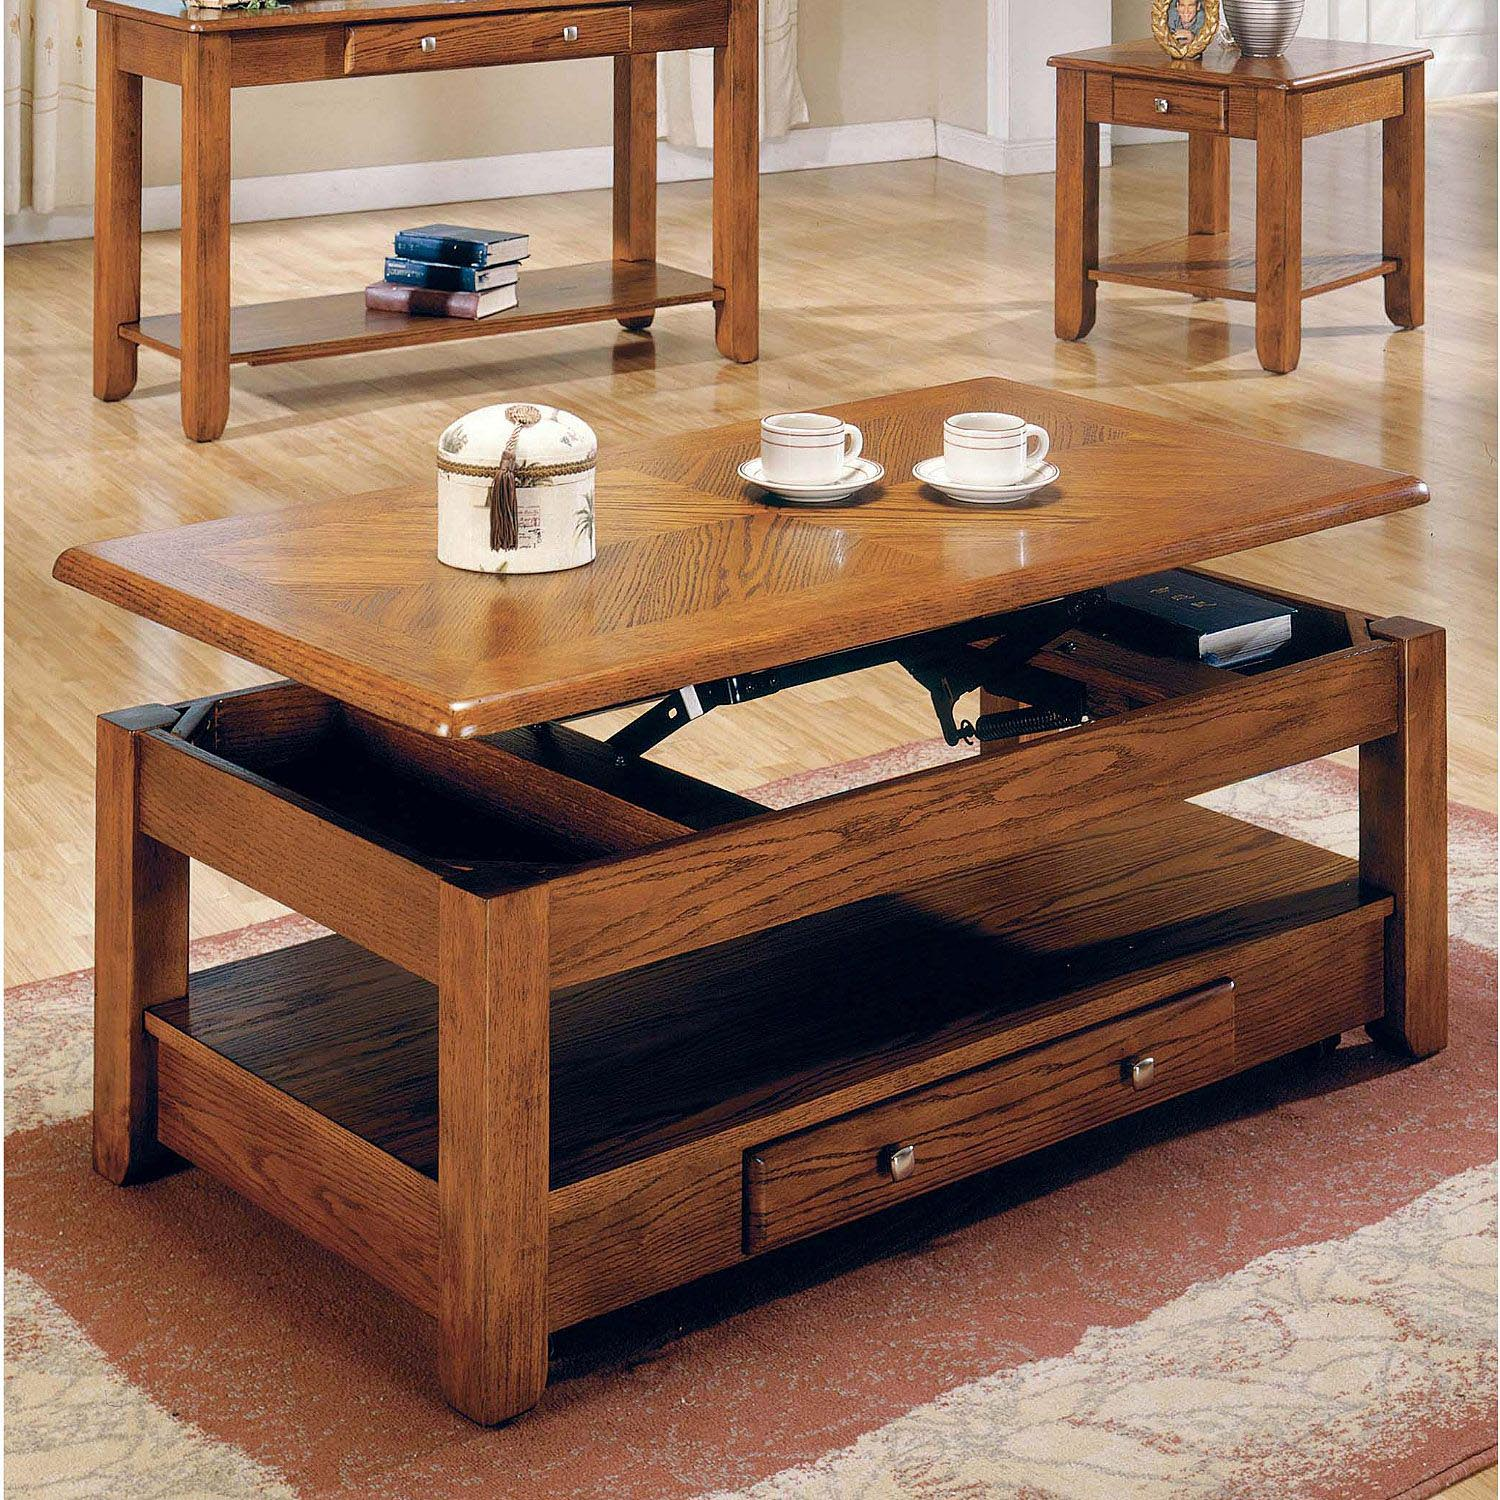 Low rise coffee table coffee table design ideas low rise coffee table geotapseo Image collections